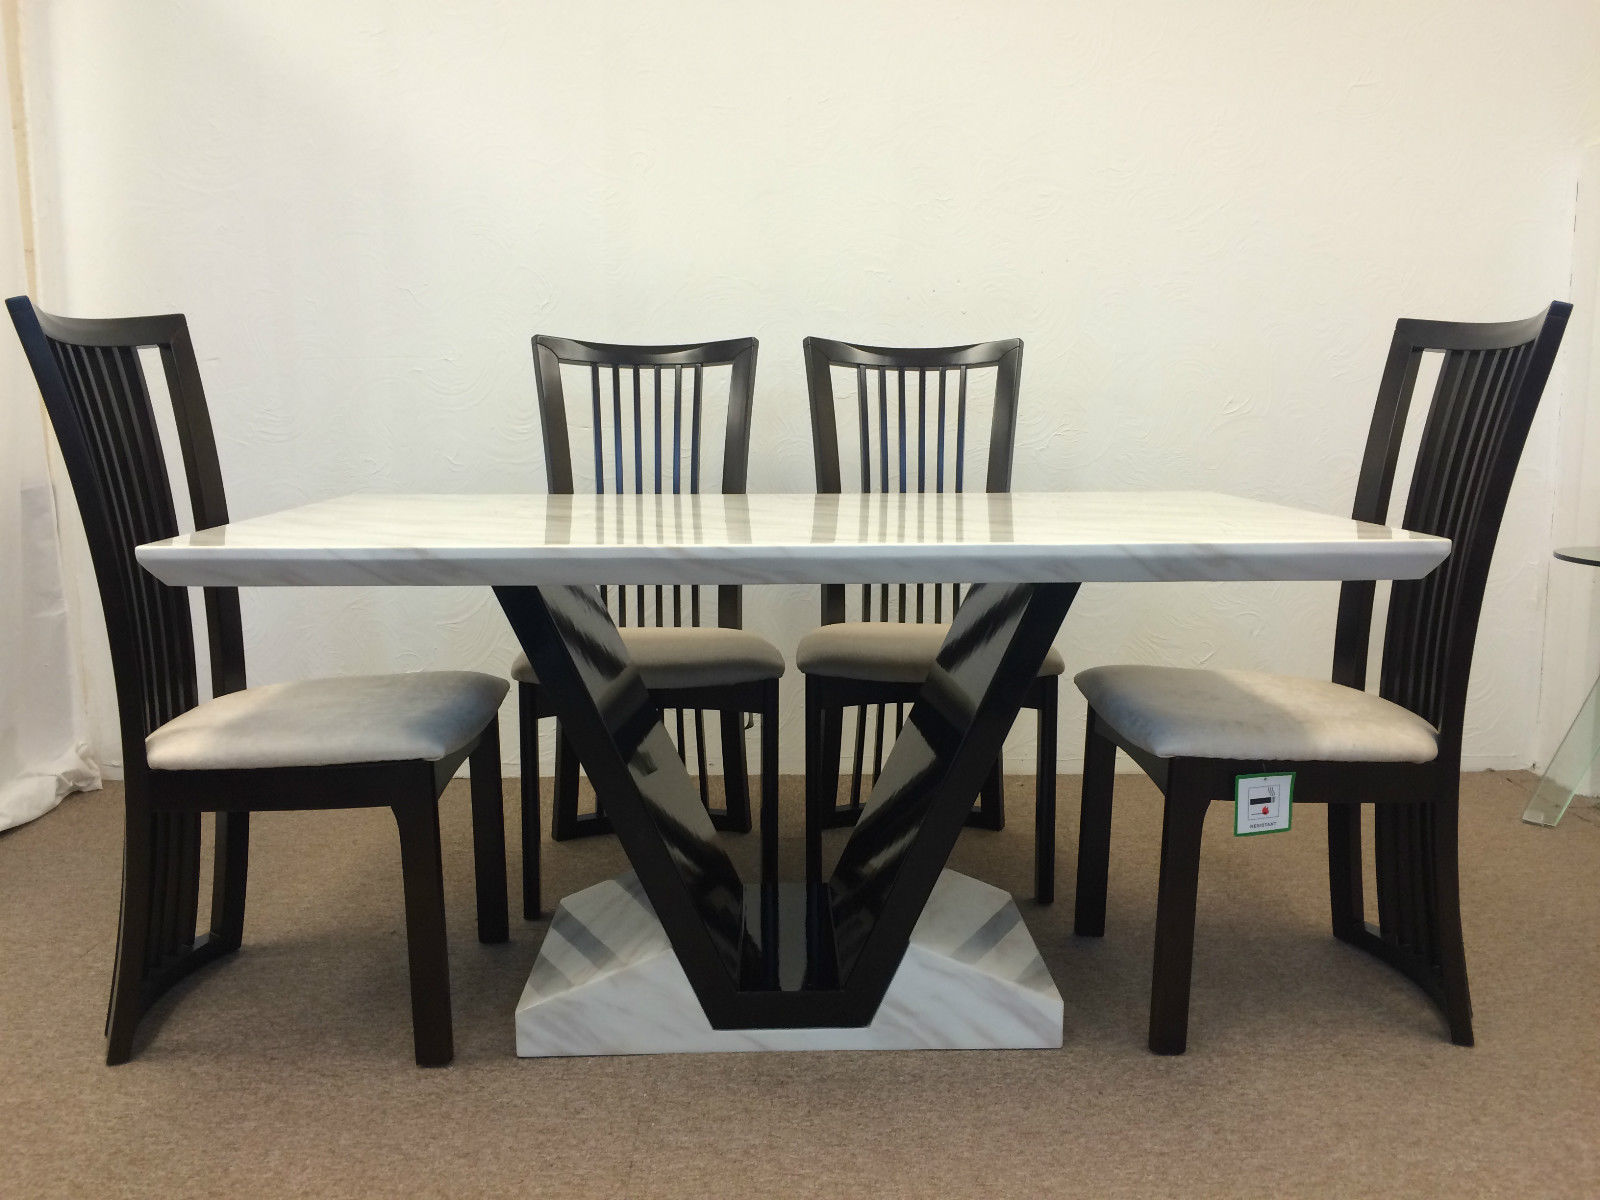 Munich Marble Dining Table + 6x Curve Back Solid Beach Wood Chairs (Copy)  (Copy) U2013 Designer Marble